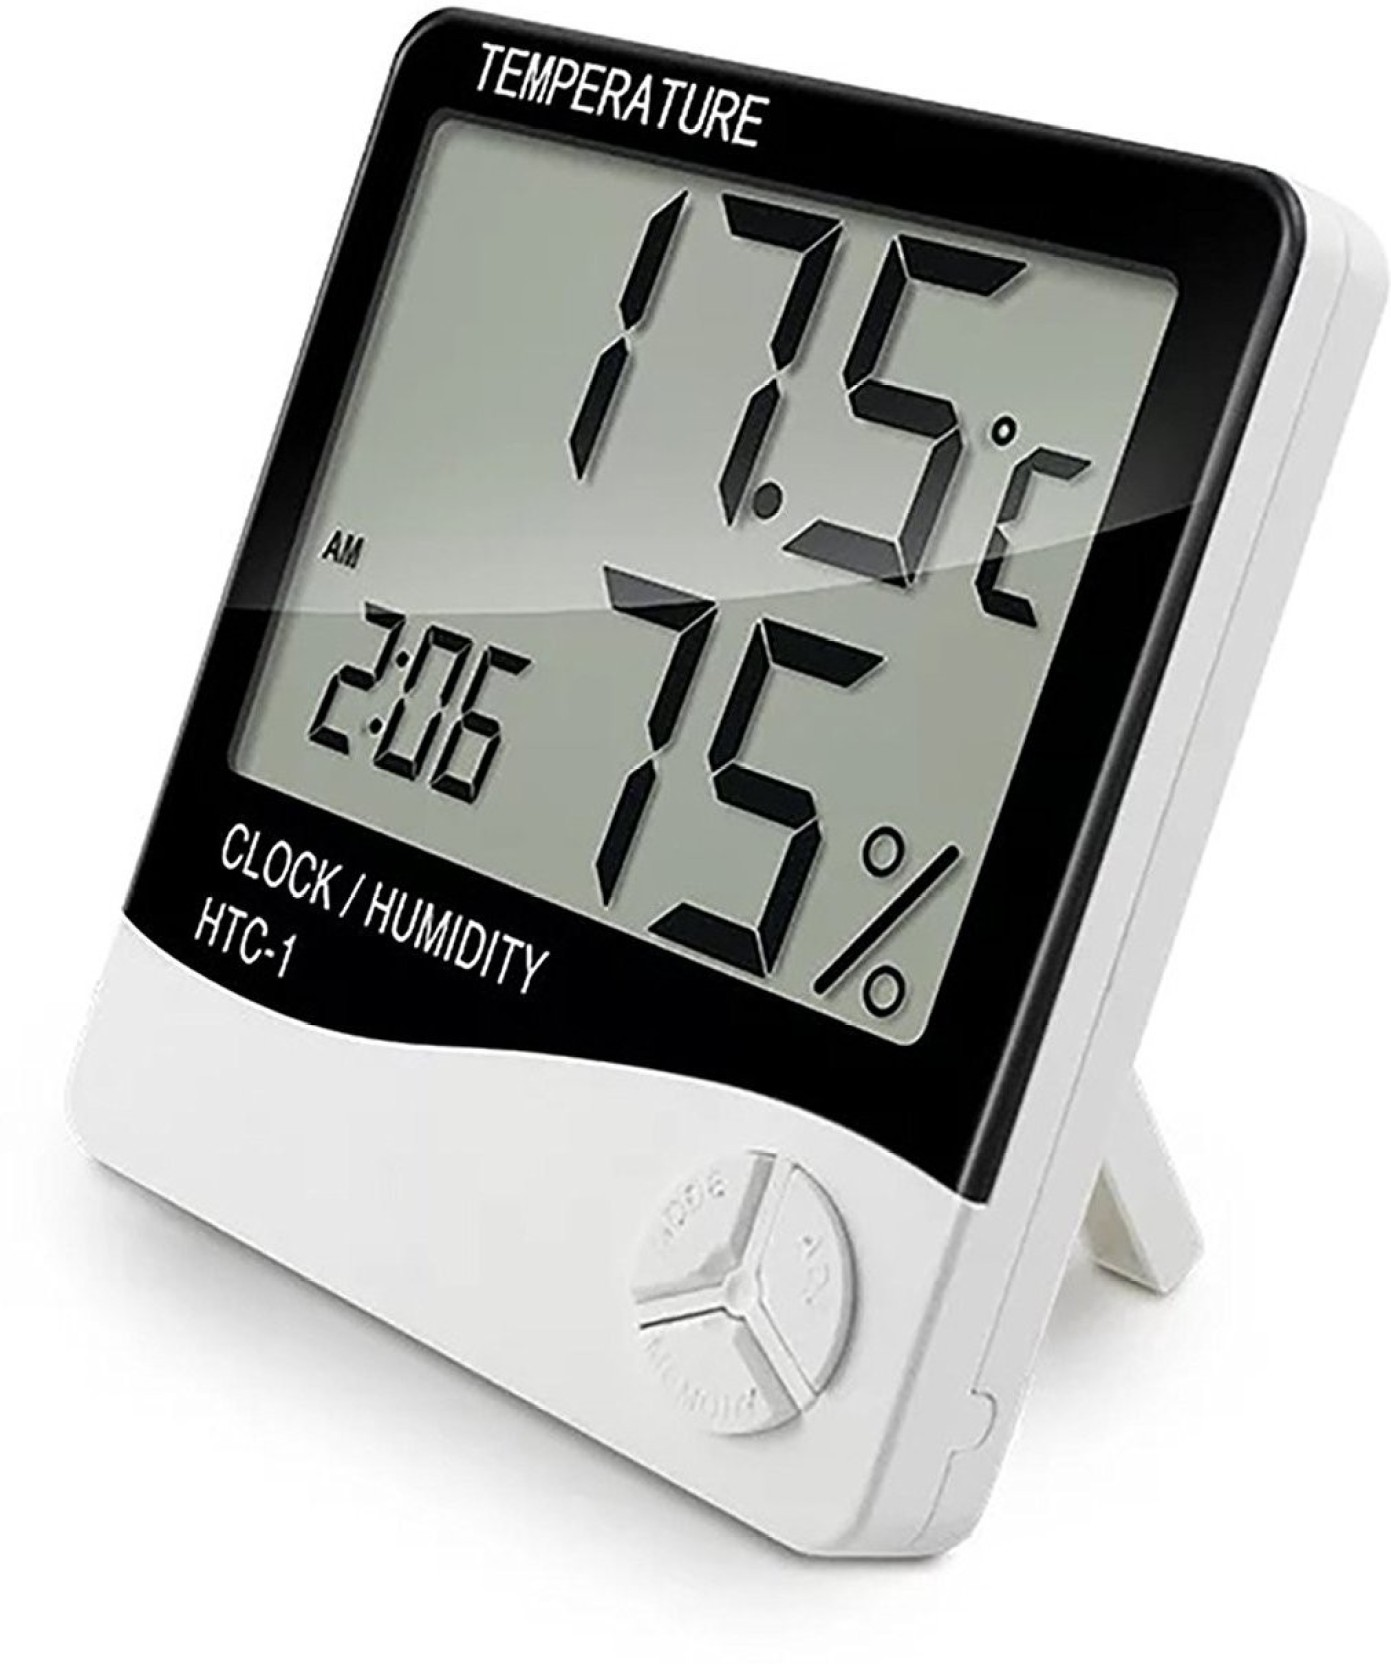 Ibs Htc 1 High Accuracy Lcd Digital Thermometer Hygrometer Indoor Electronic Temperature Add To Cart